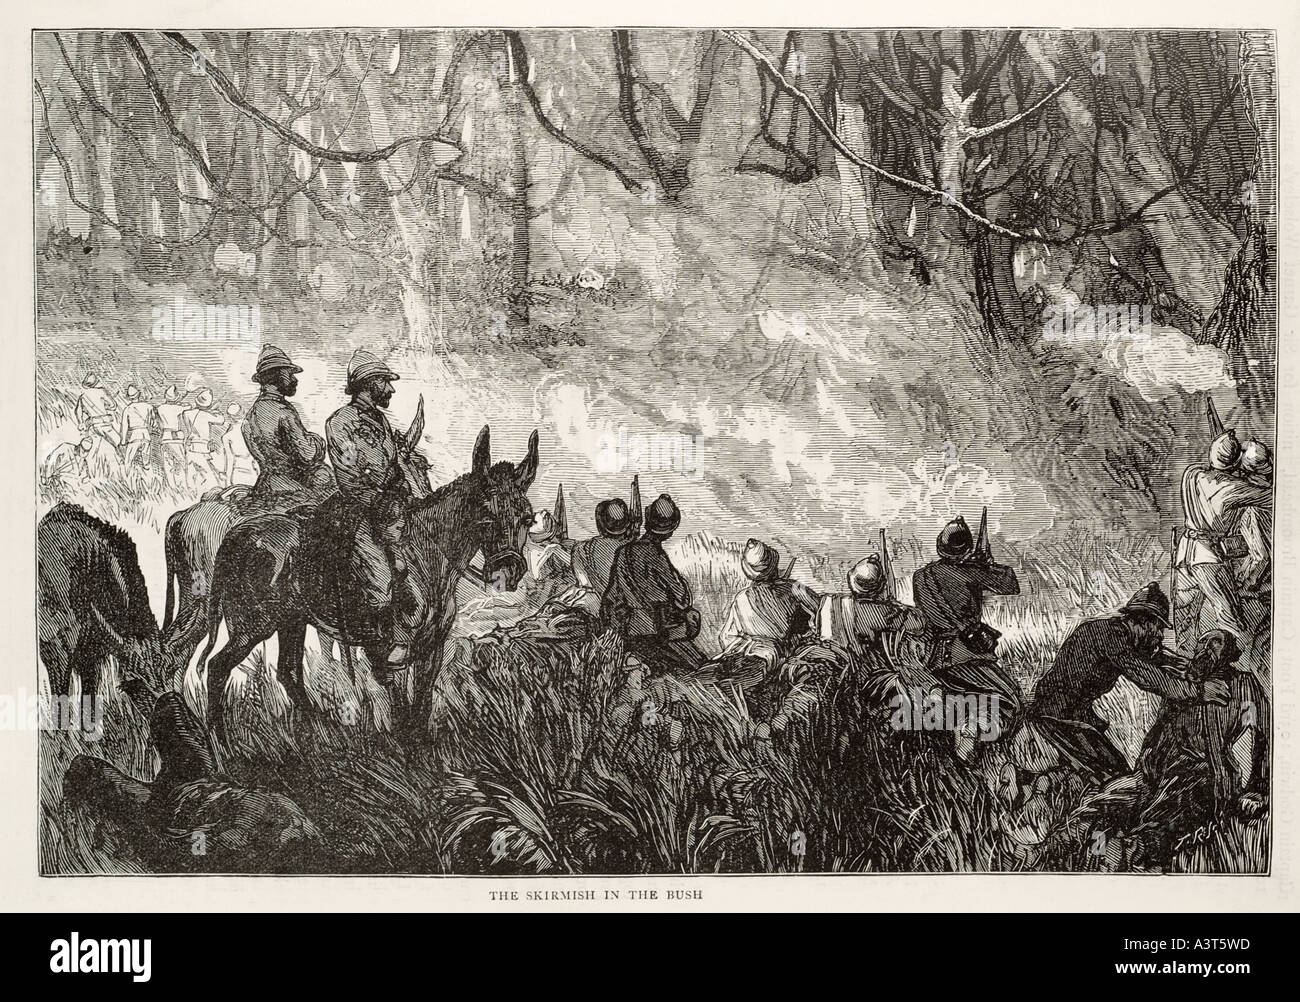 skirmish bush horse cavalry war soldier conflict Africa jungle history military rifle sword fight kill conflict danger - Stock Image